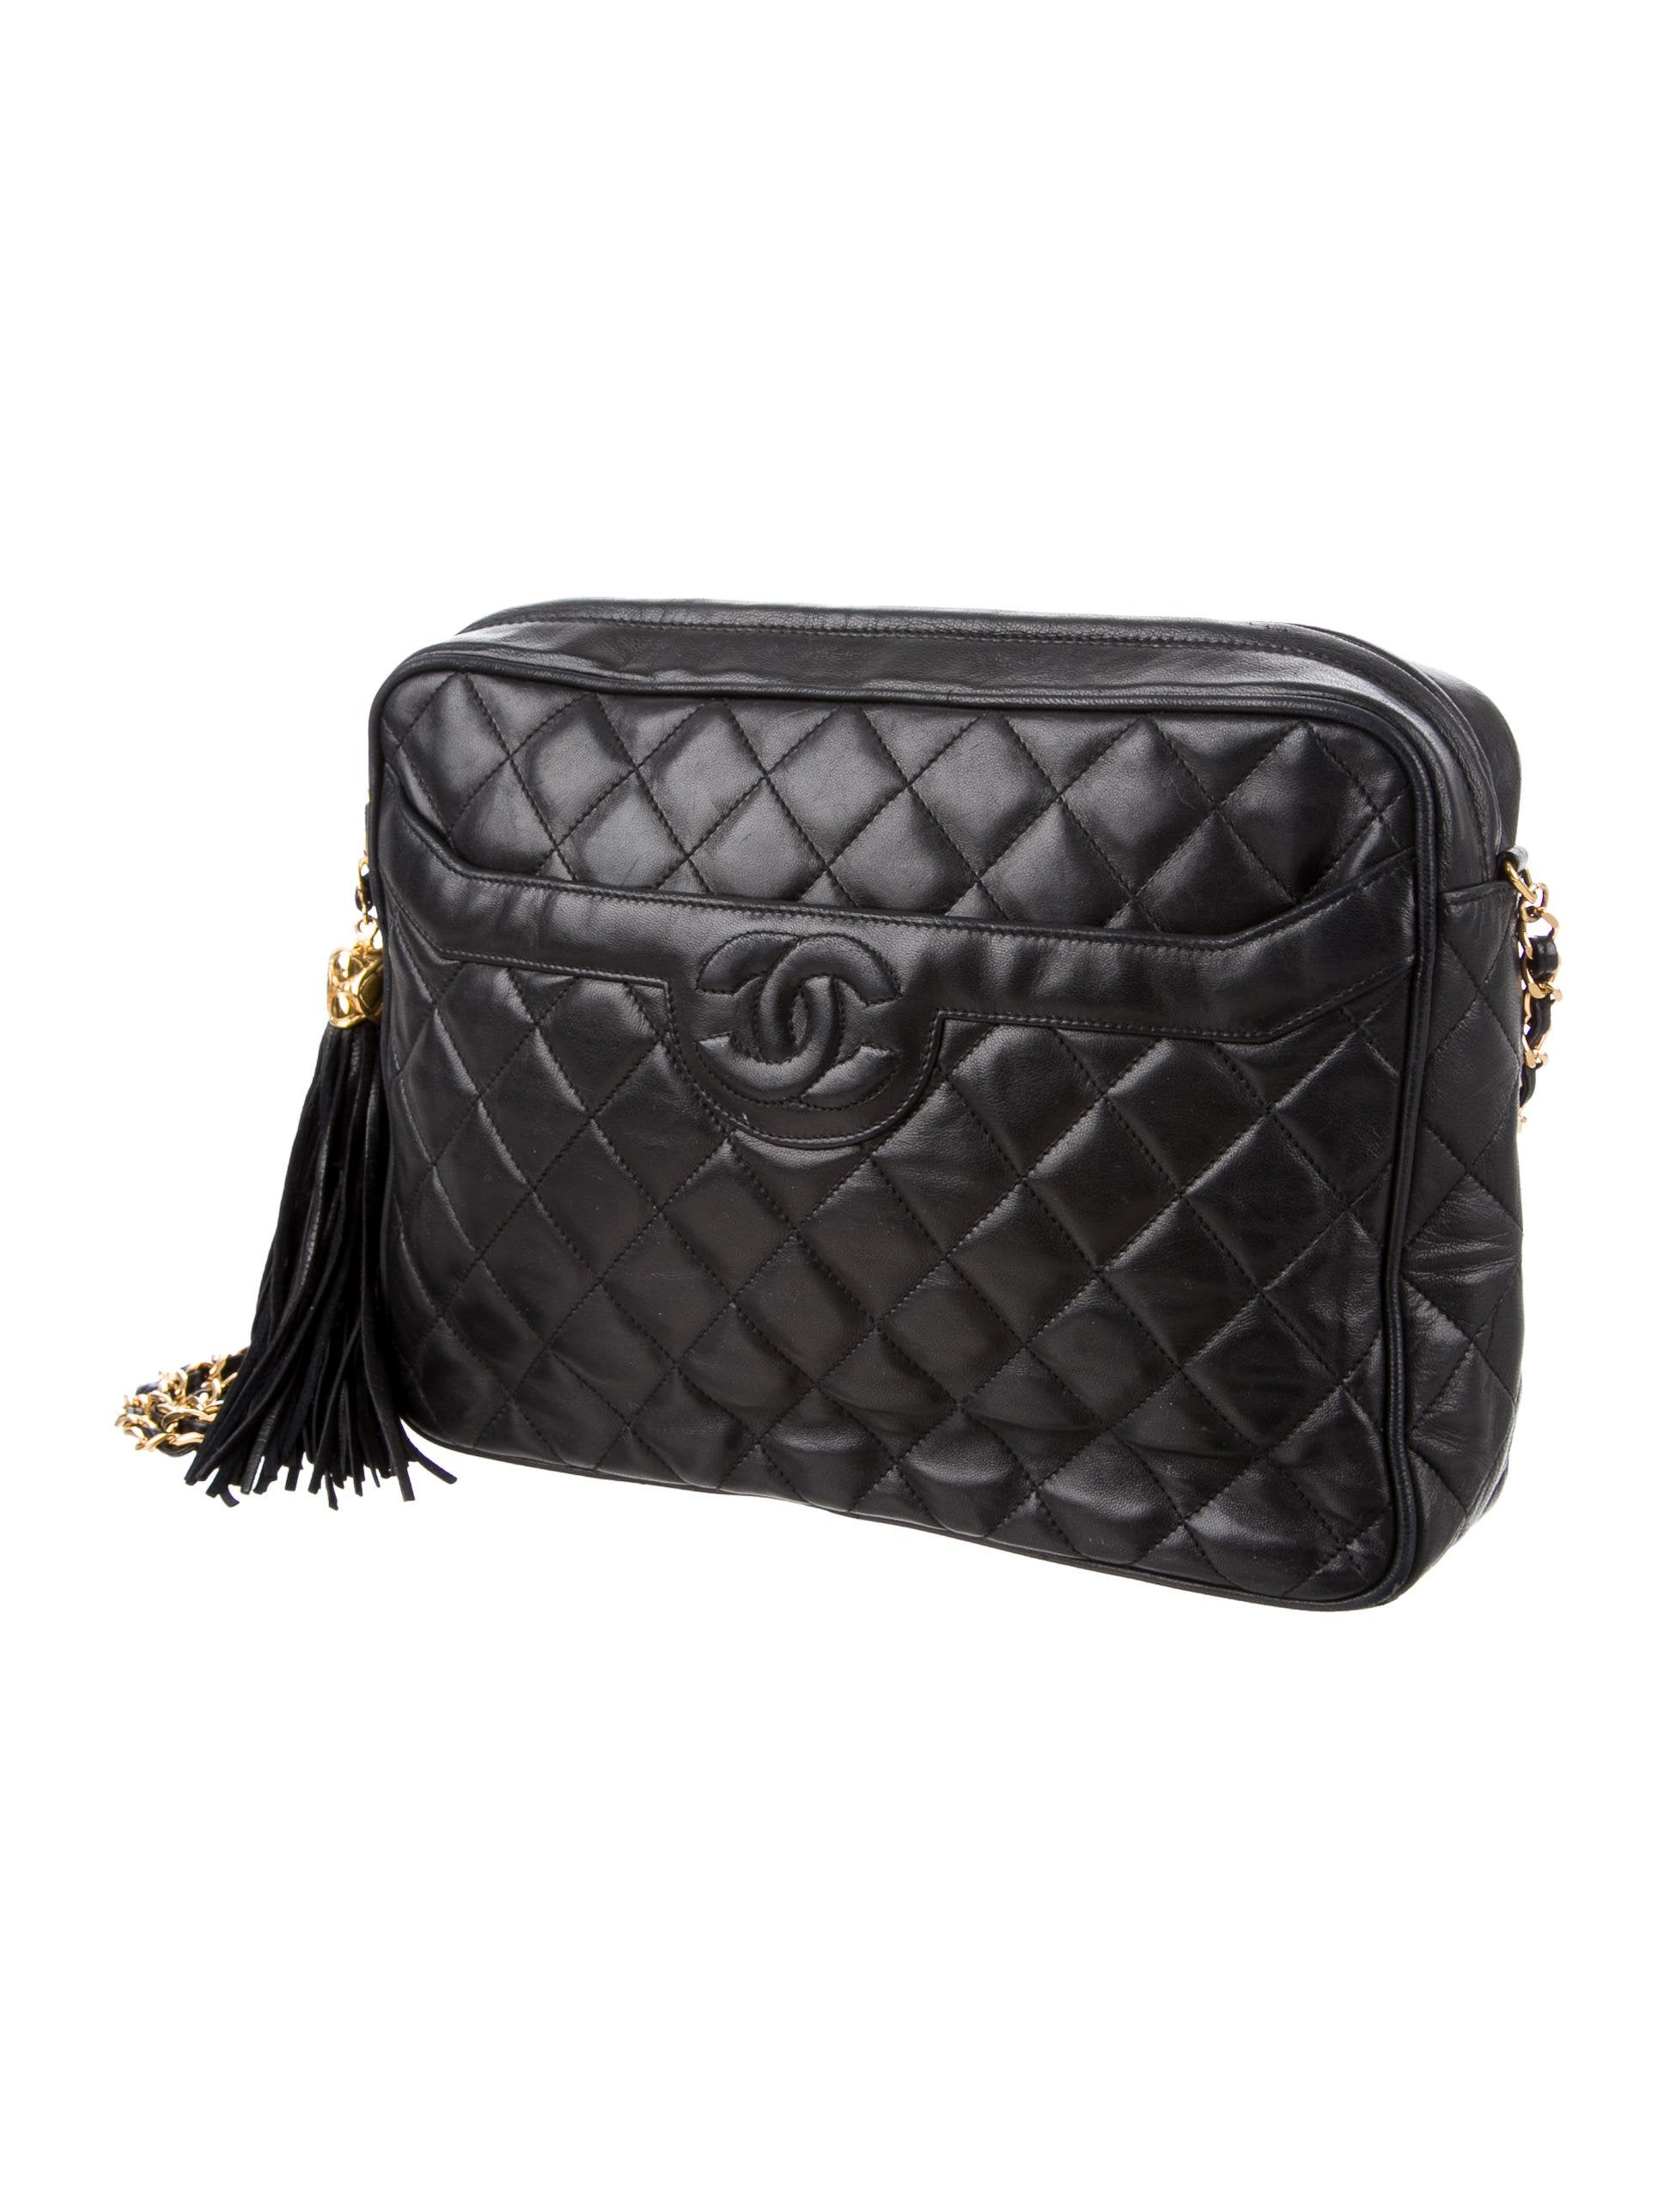 Chanel Lambskin Quilted Camera Bag Handbags Cha183513